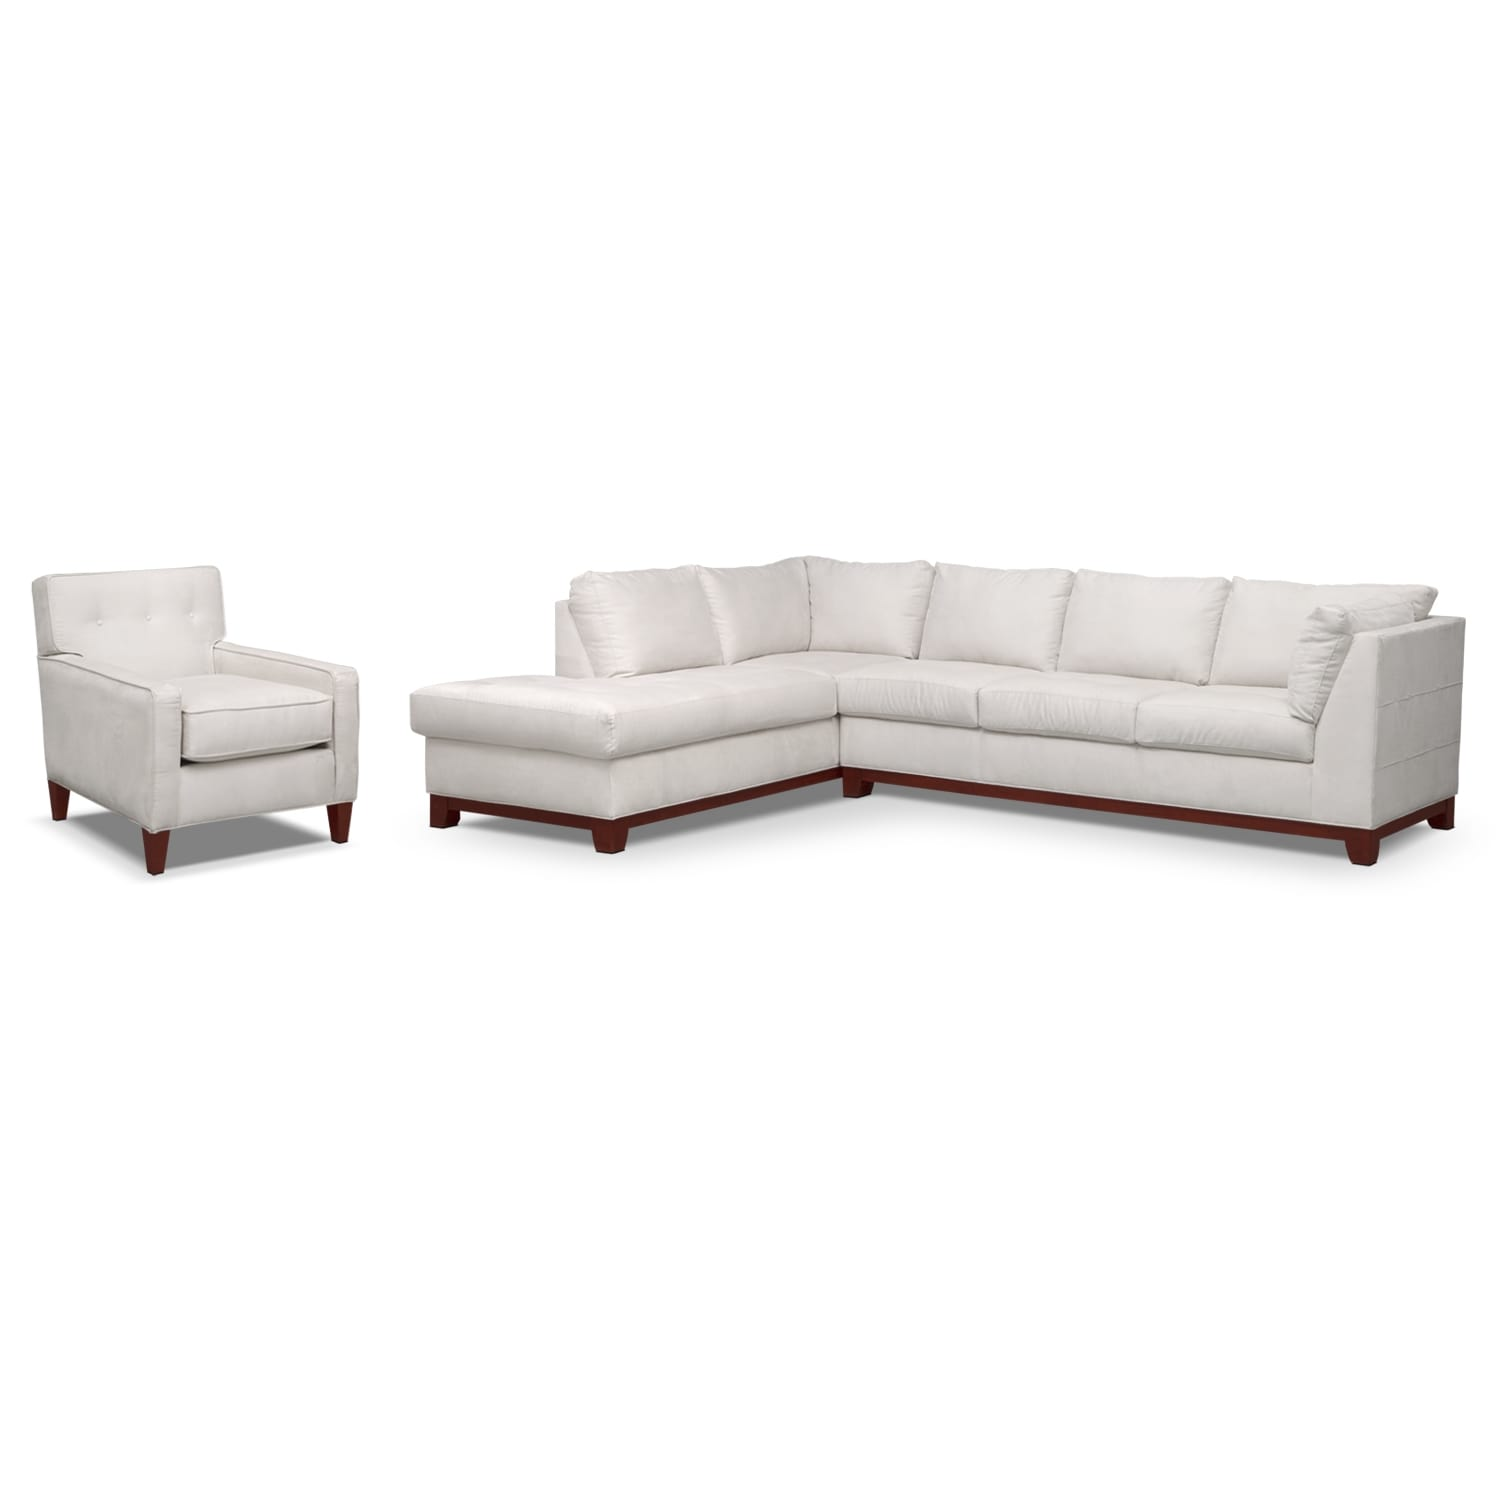 Soho 2-Piece Sectional with Left-Facing Chaise and Chair - Cement